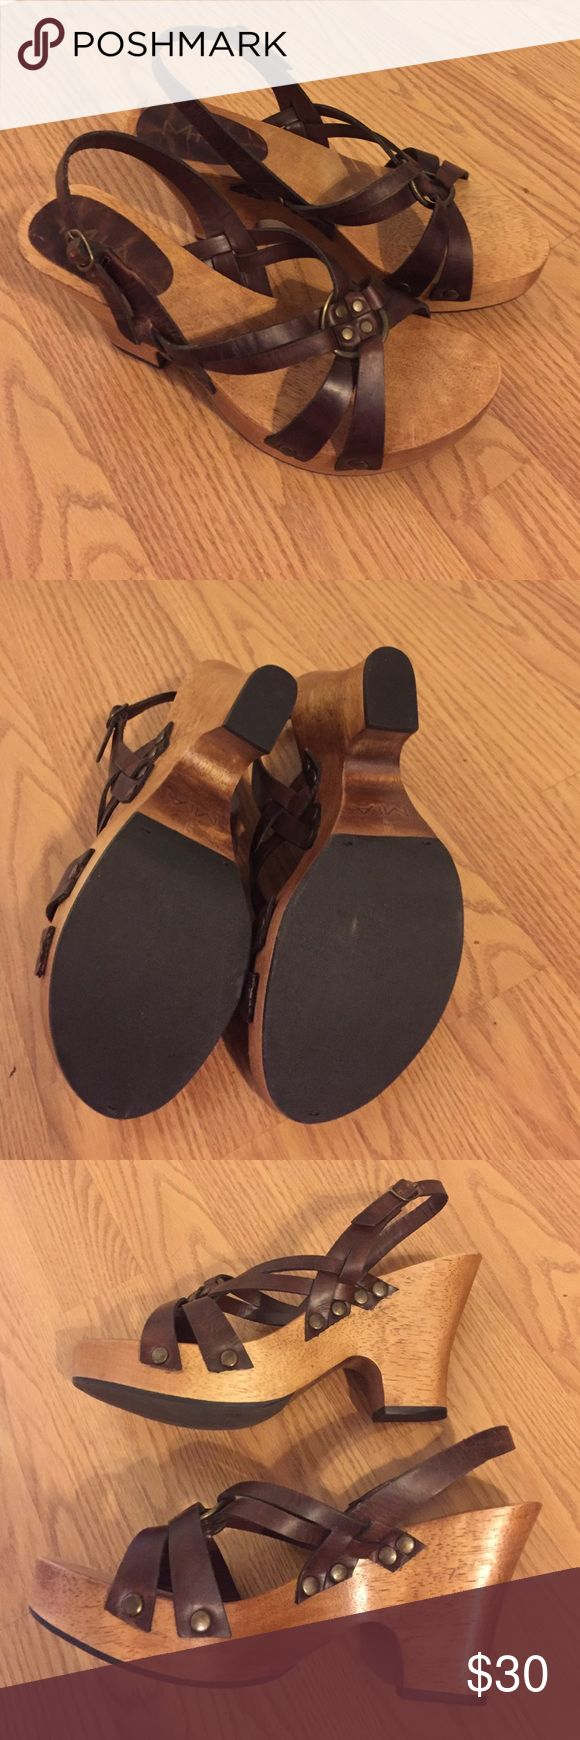 Mia Strappy Heeled Clog Sandal Brown Leather Lovely shoes with leather upper and wood soles. Brass details in new without tags or box! Not one scratch mark on the bottom and no dirt! In perfect condition. A half size too small for me and I'm 9-9.5. Mia Shoes Mules & Clogs